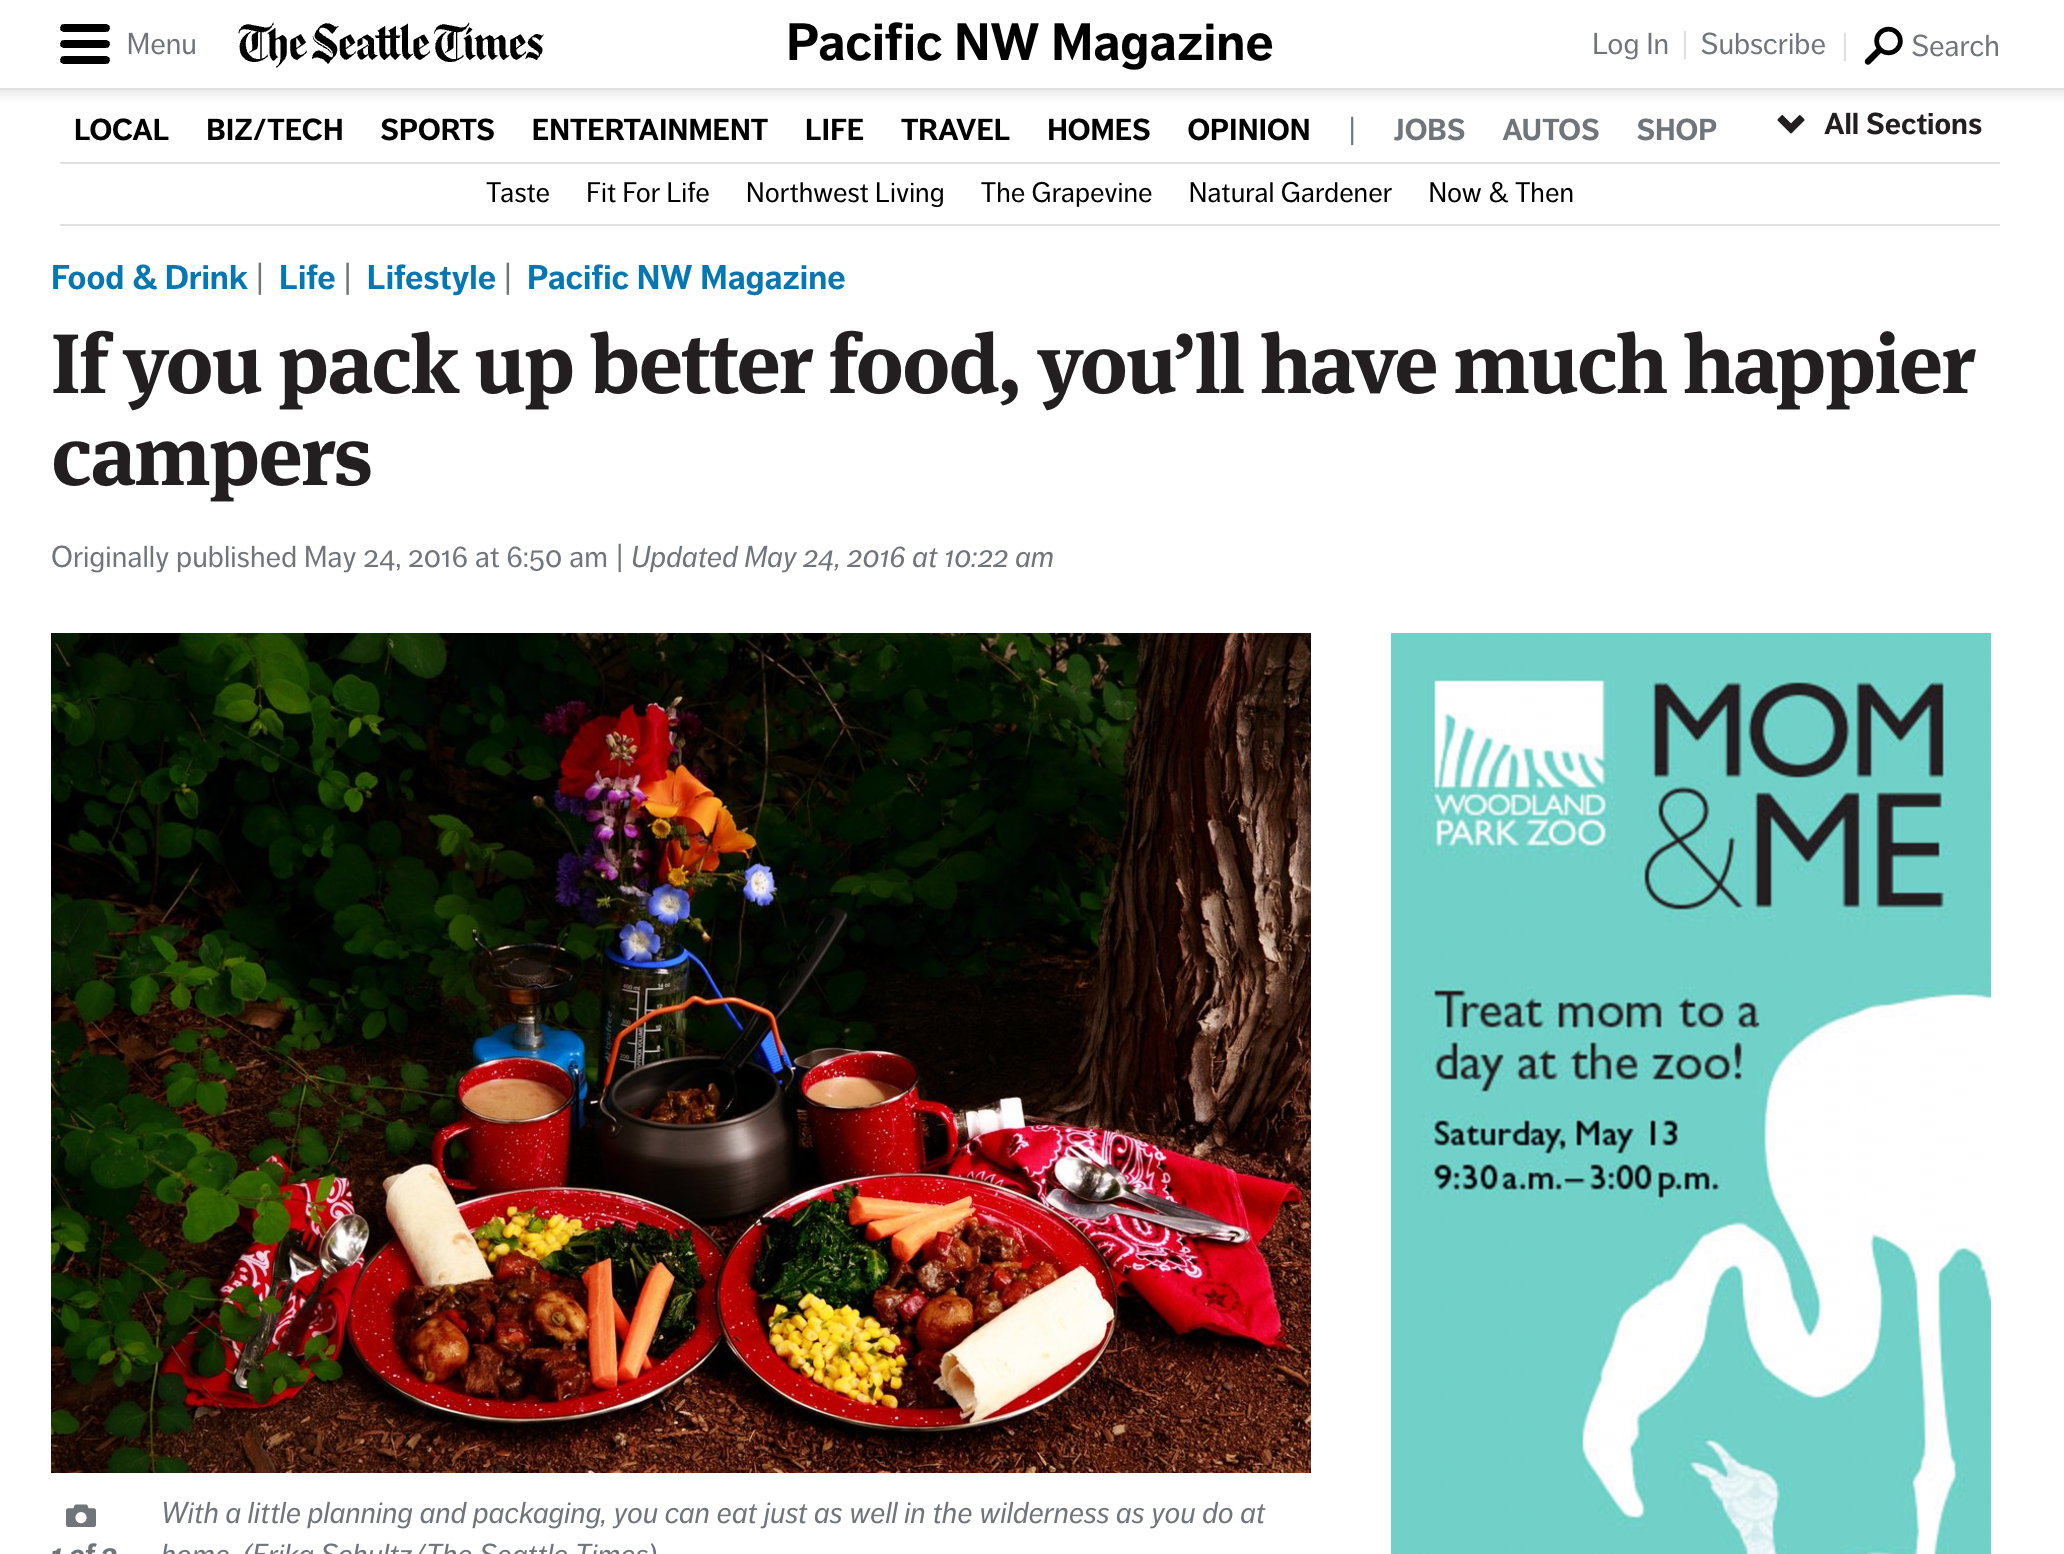 Seattle Times:  If You Pack Up Better Food, You'd Have Happier Campers